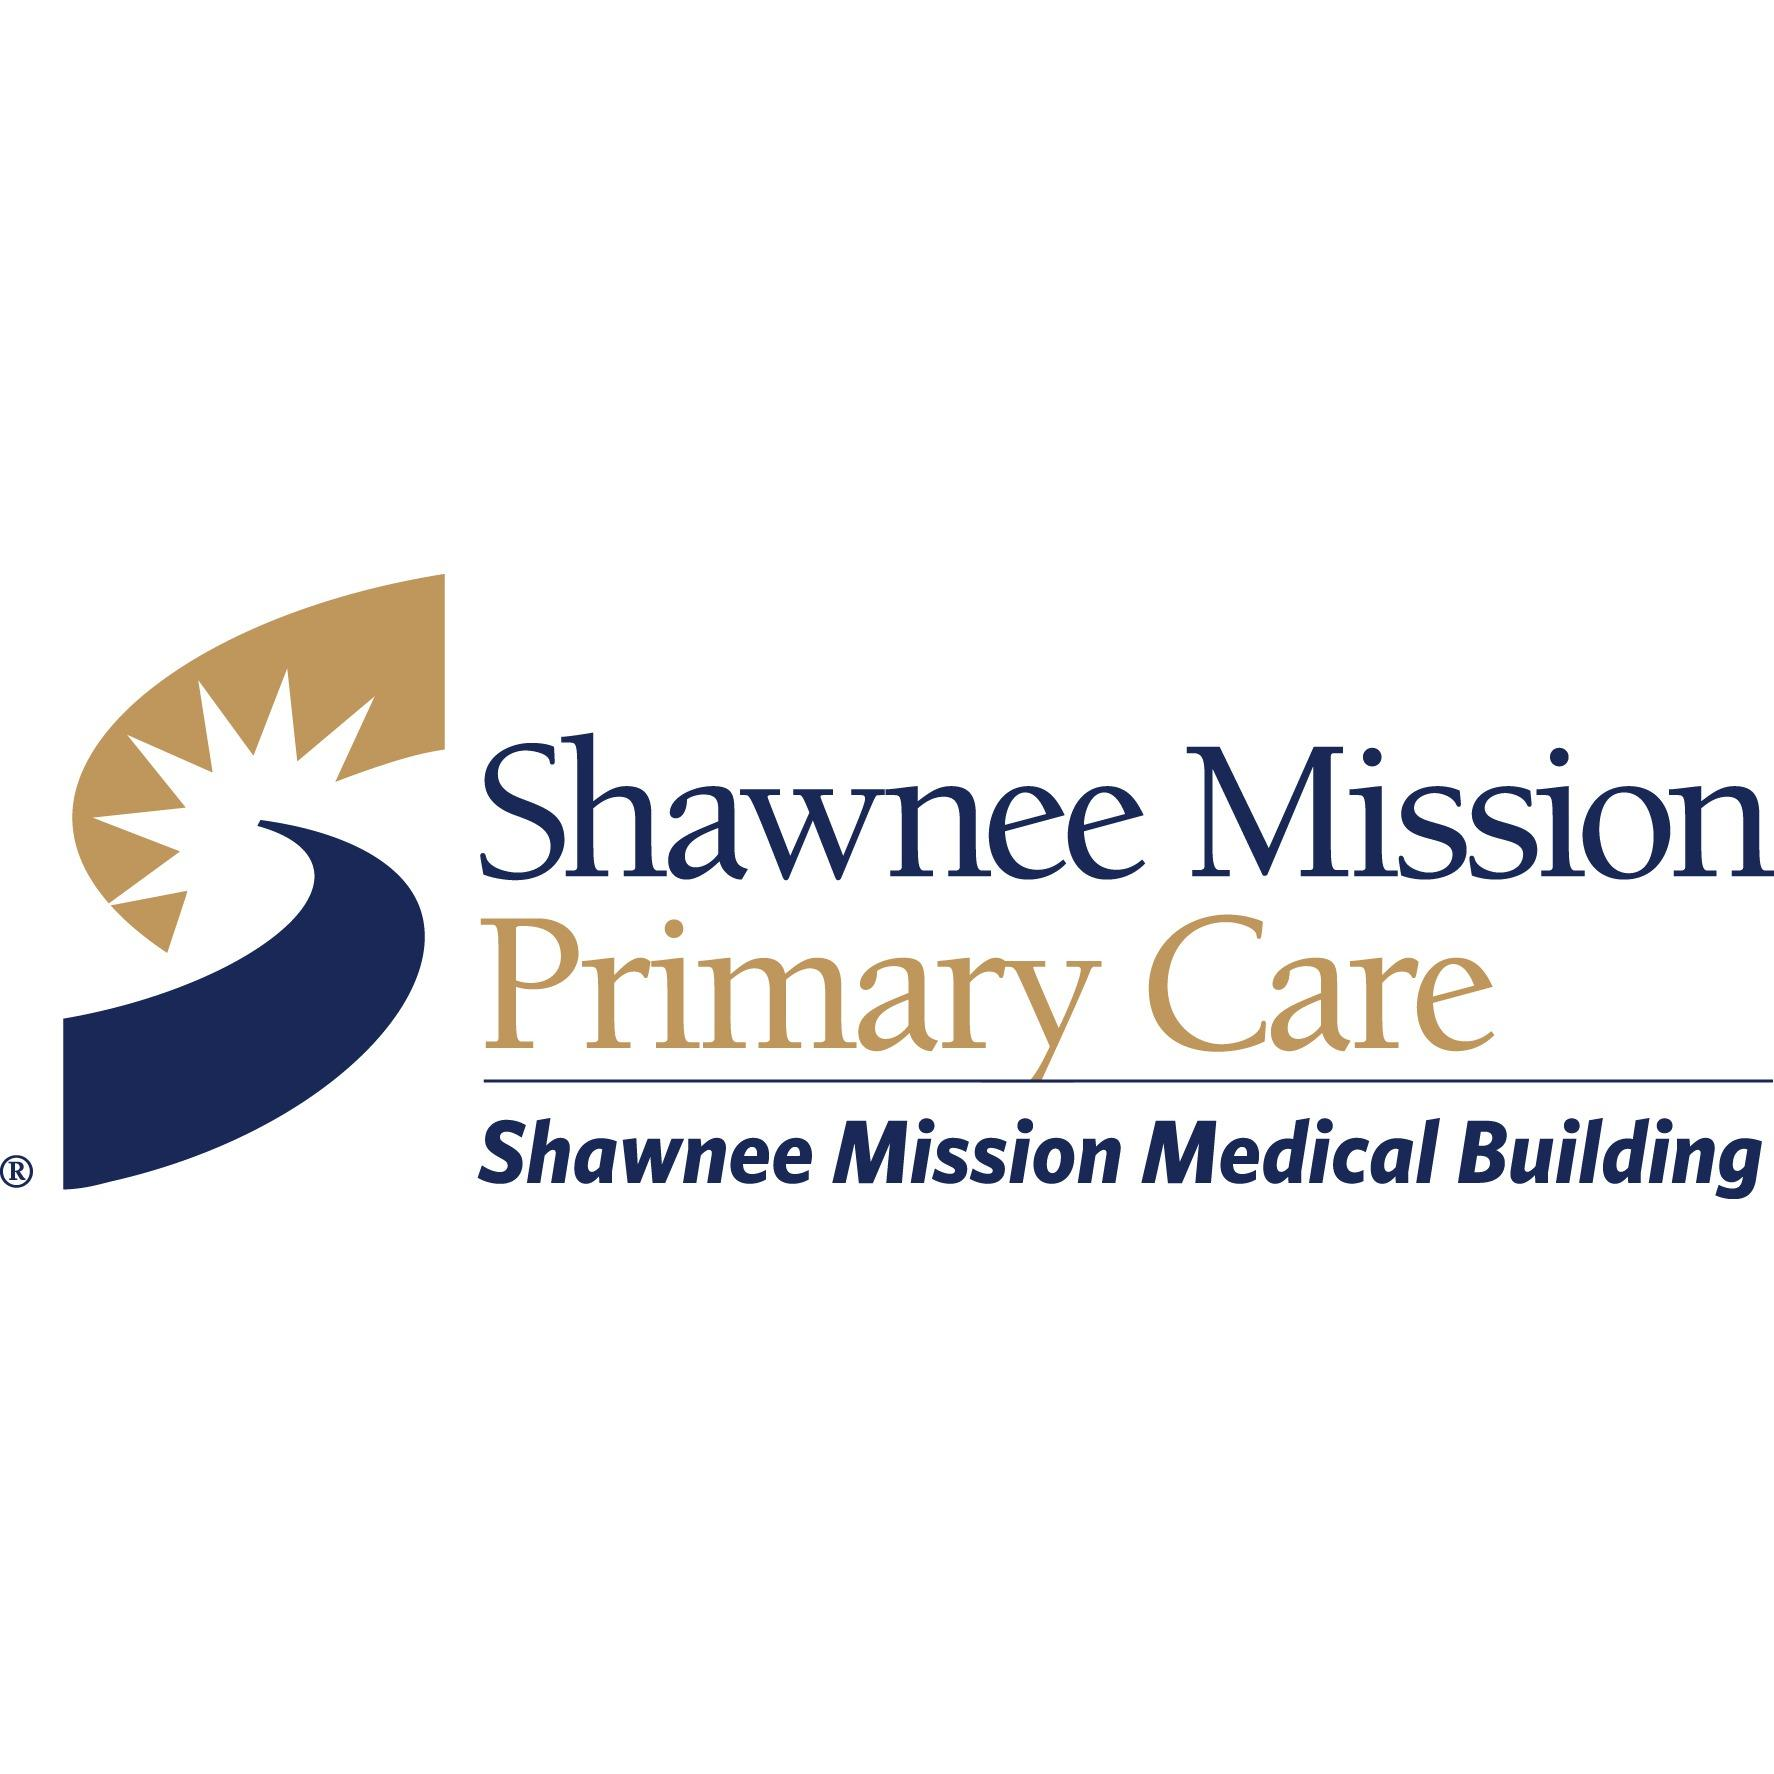 Shawnee Mission Primary Care – Shawnee Mission Medical Building